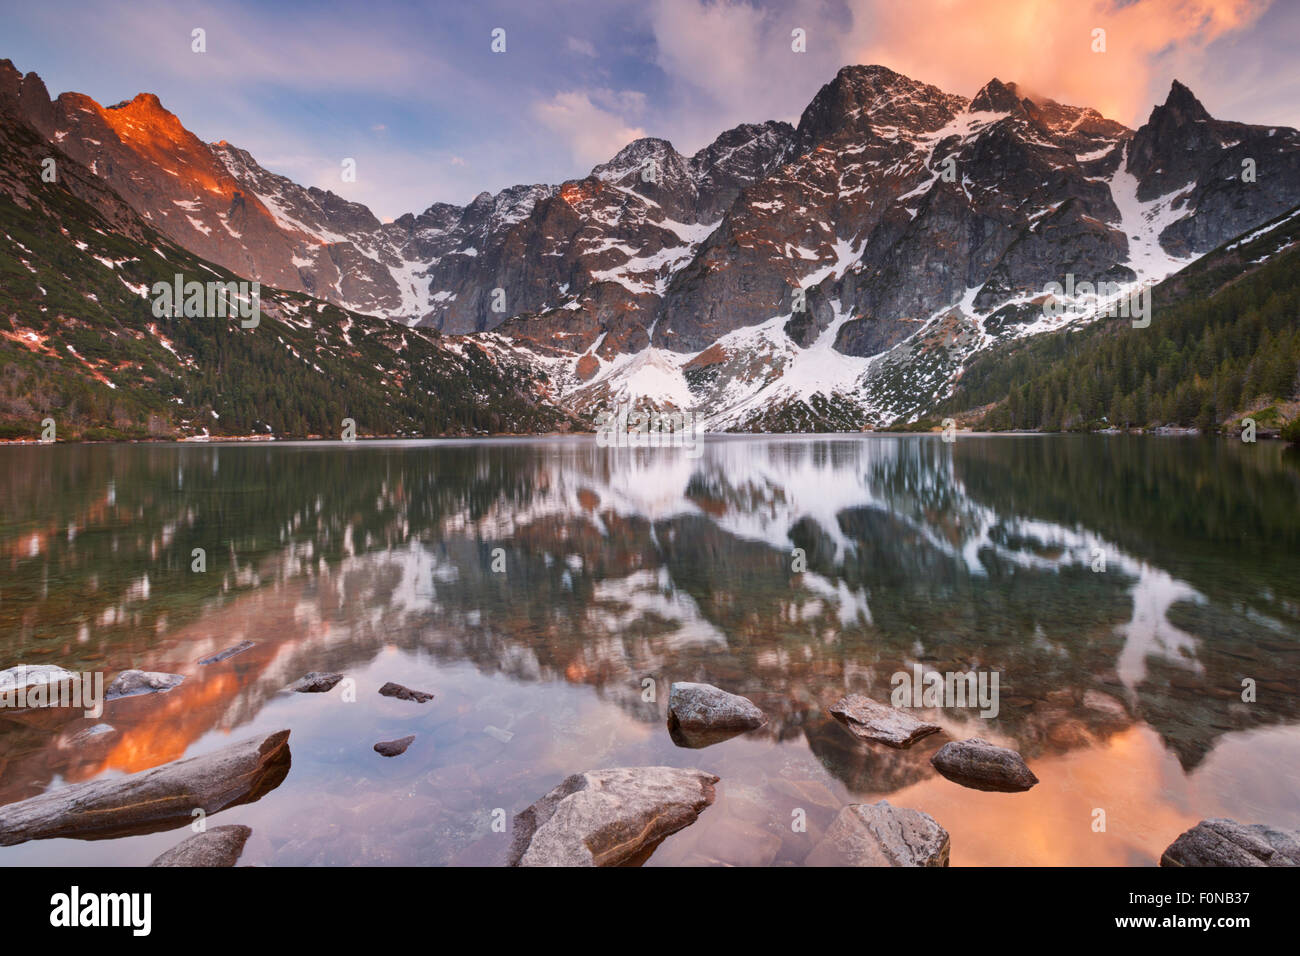 The Morskie Oko mountain lake in the Tatra Mountains in Poland, photographed at sunset. - Stock Image